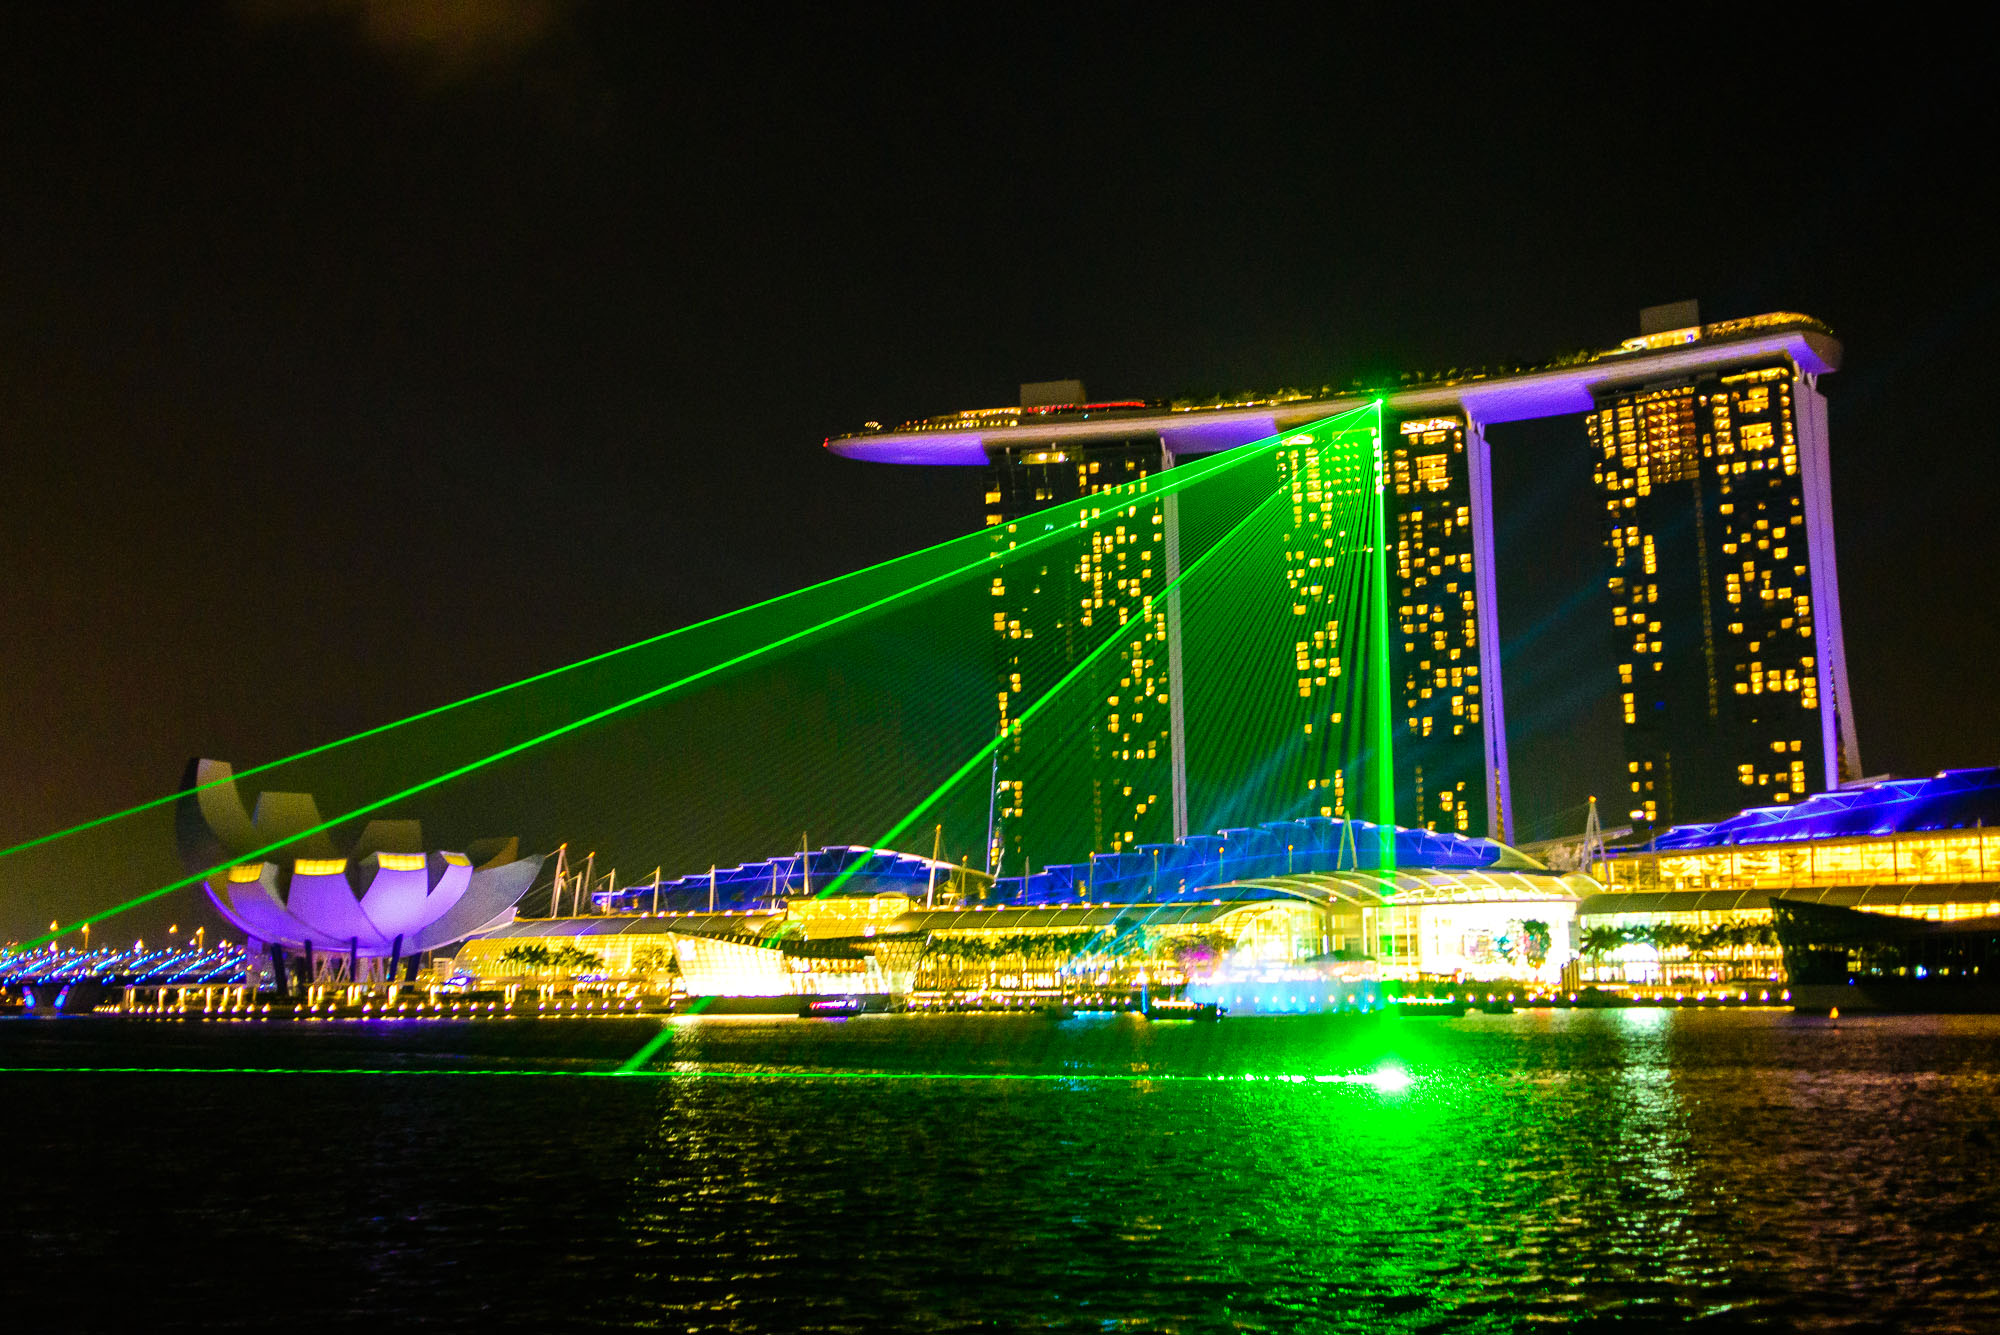 33 Very Beautiful Marina Bay Sands, Singapore Pictures And Images